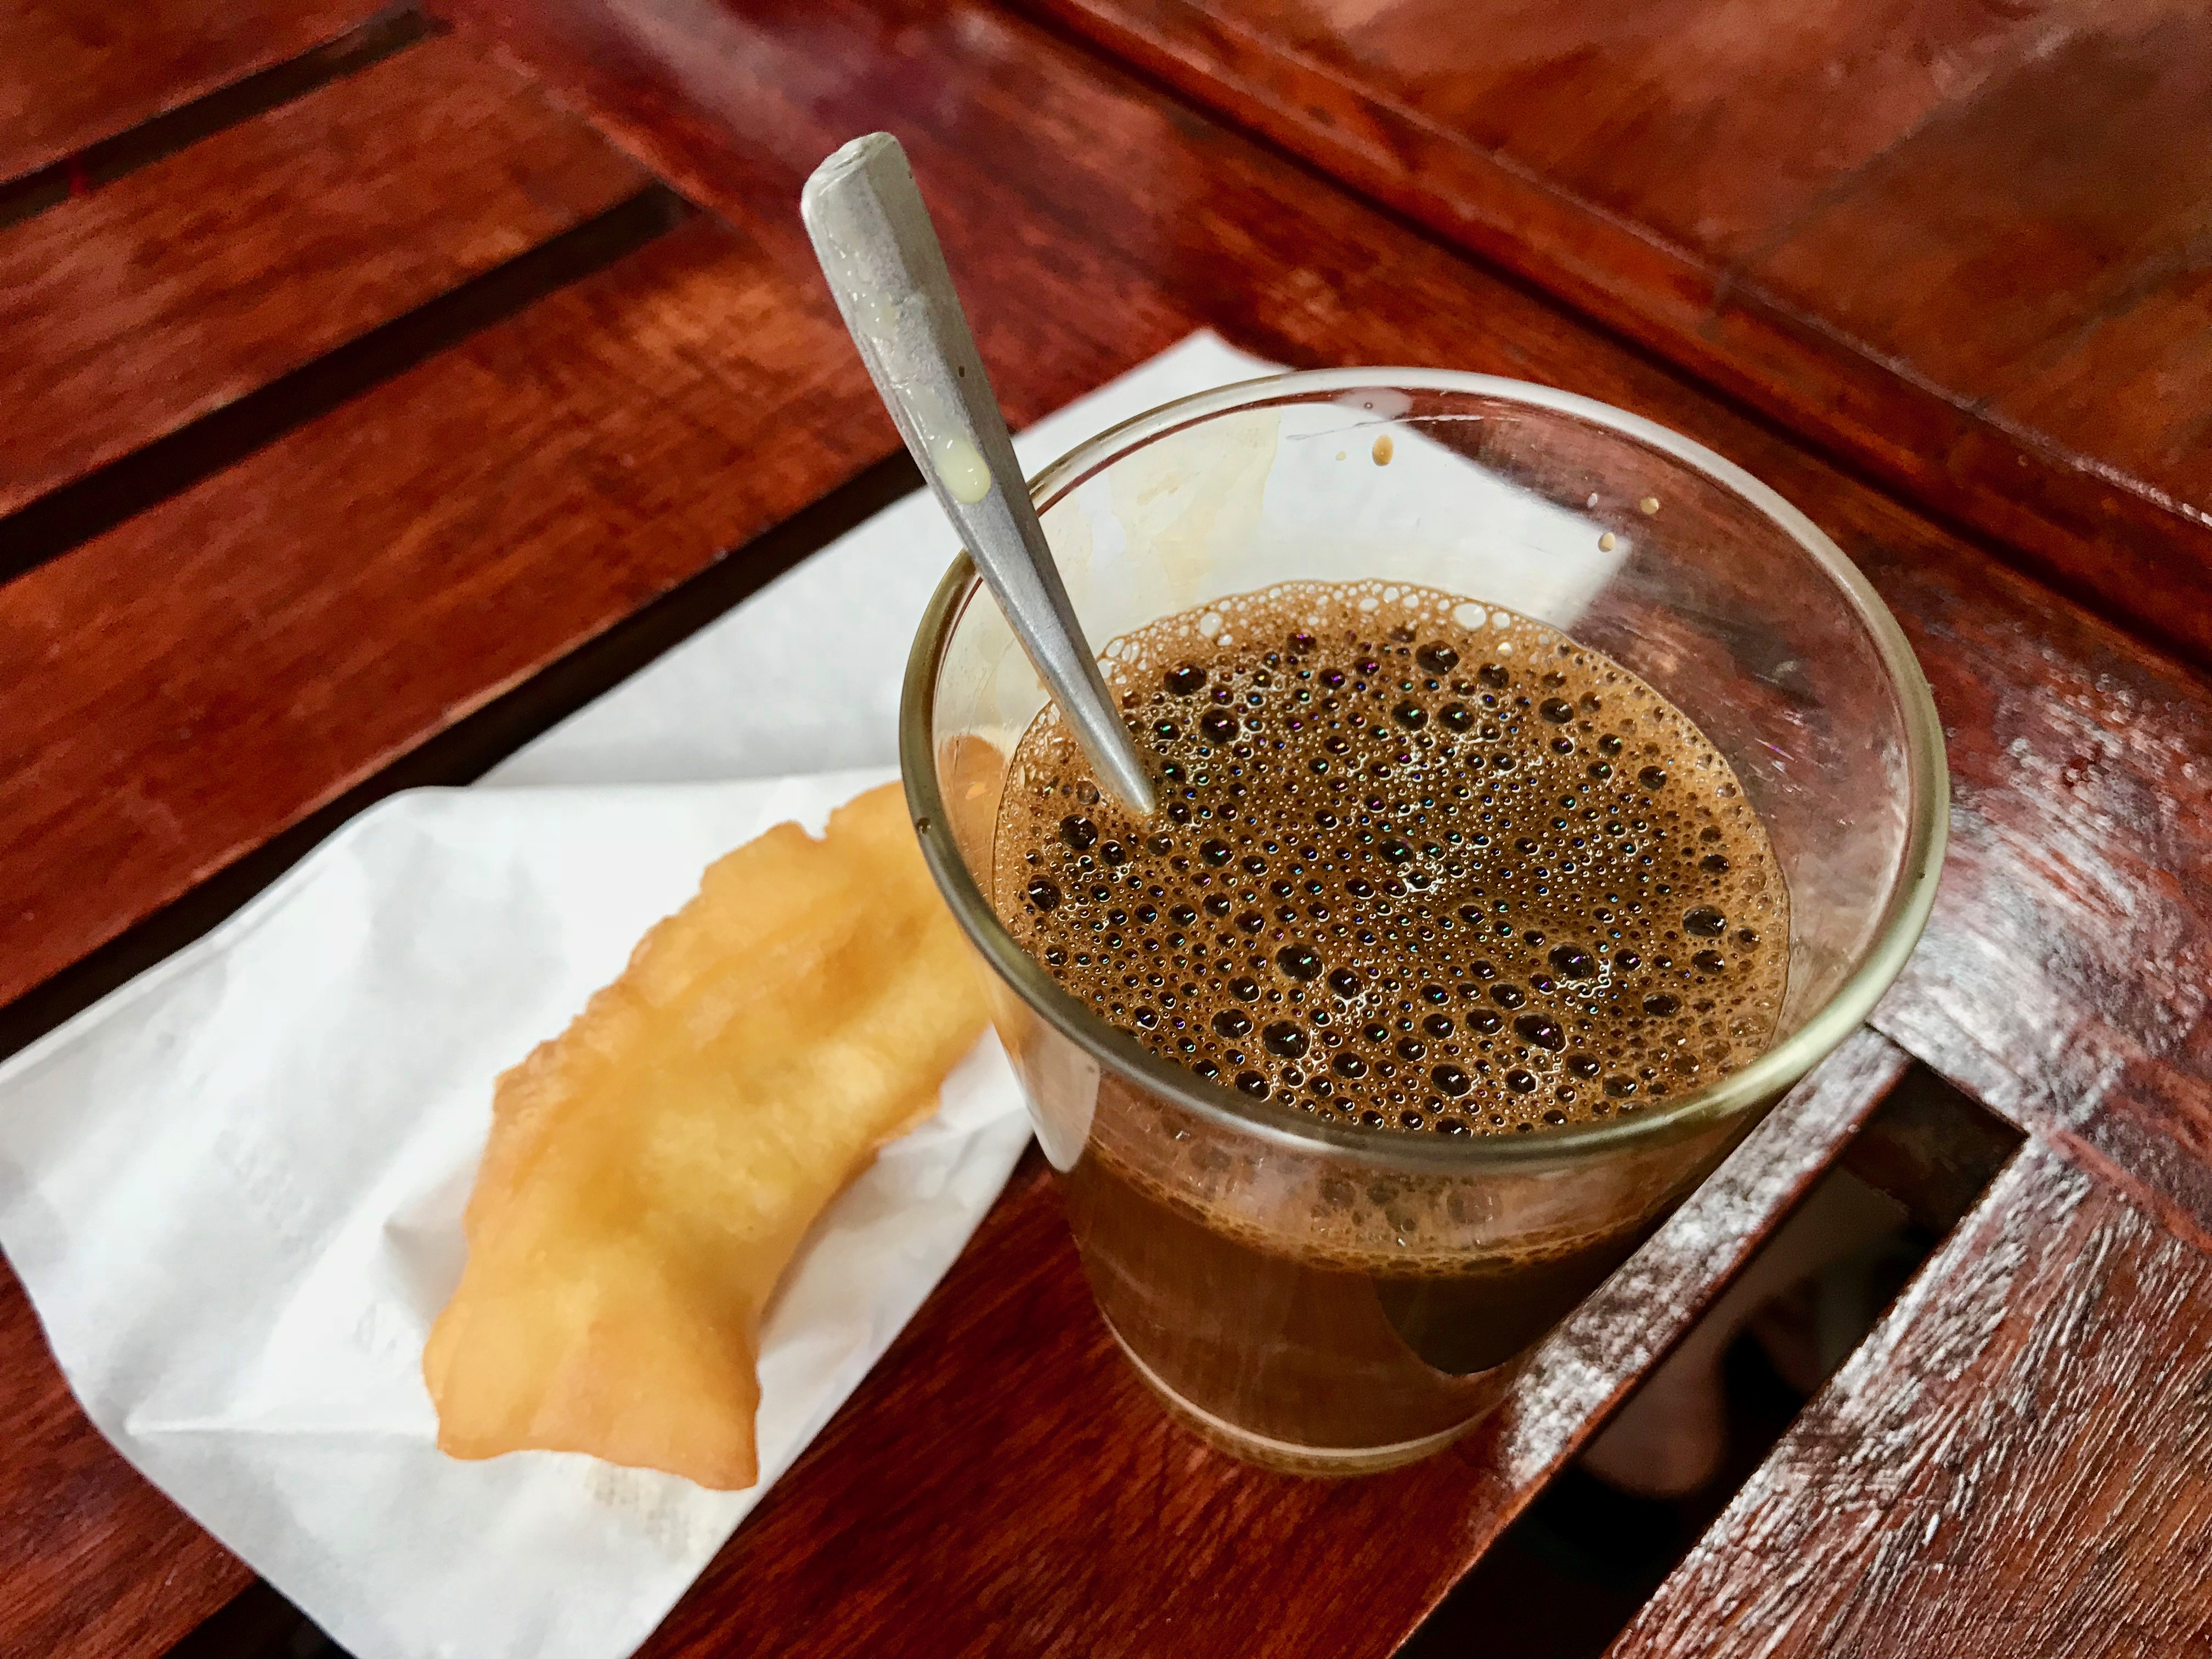 Chinese doughnuts to dunk in the delicious Thai coffee